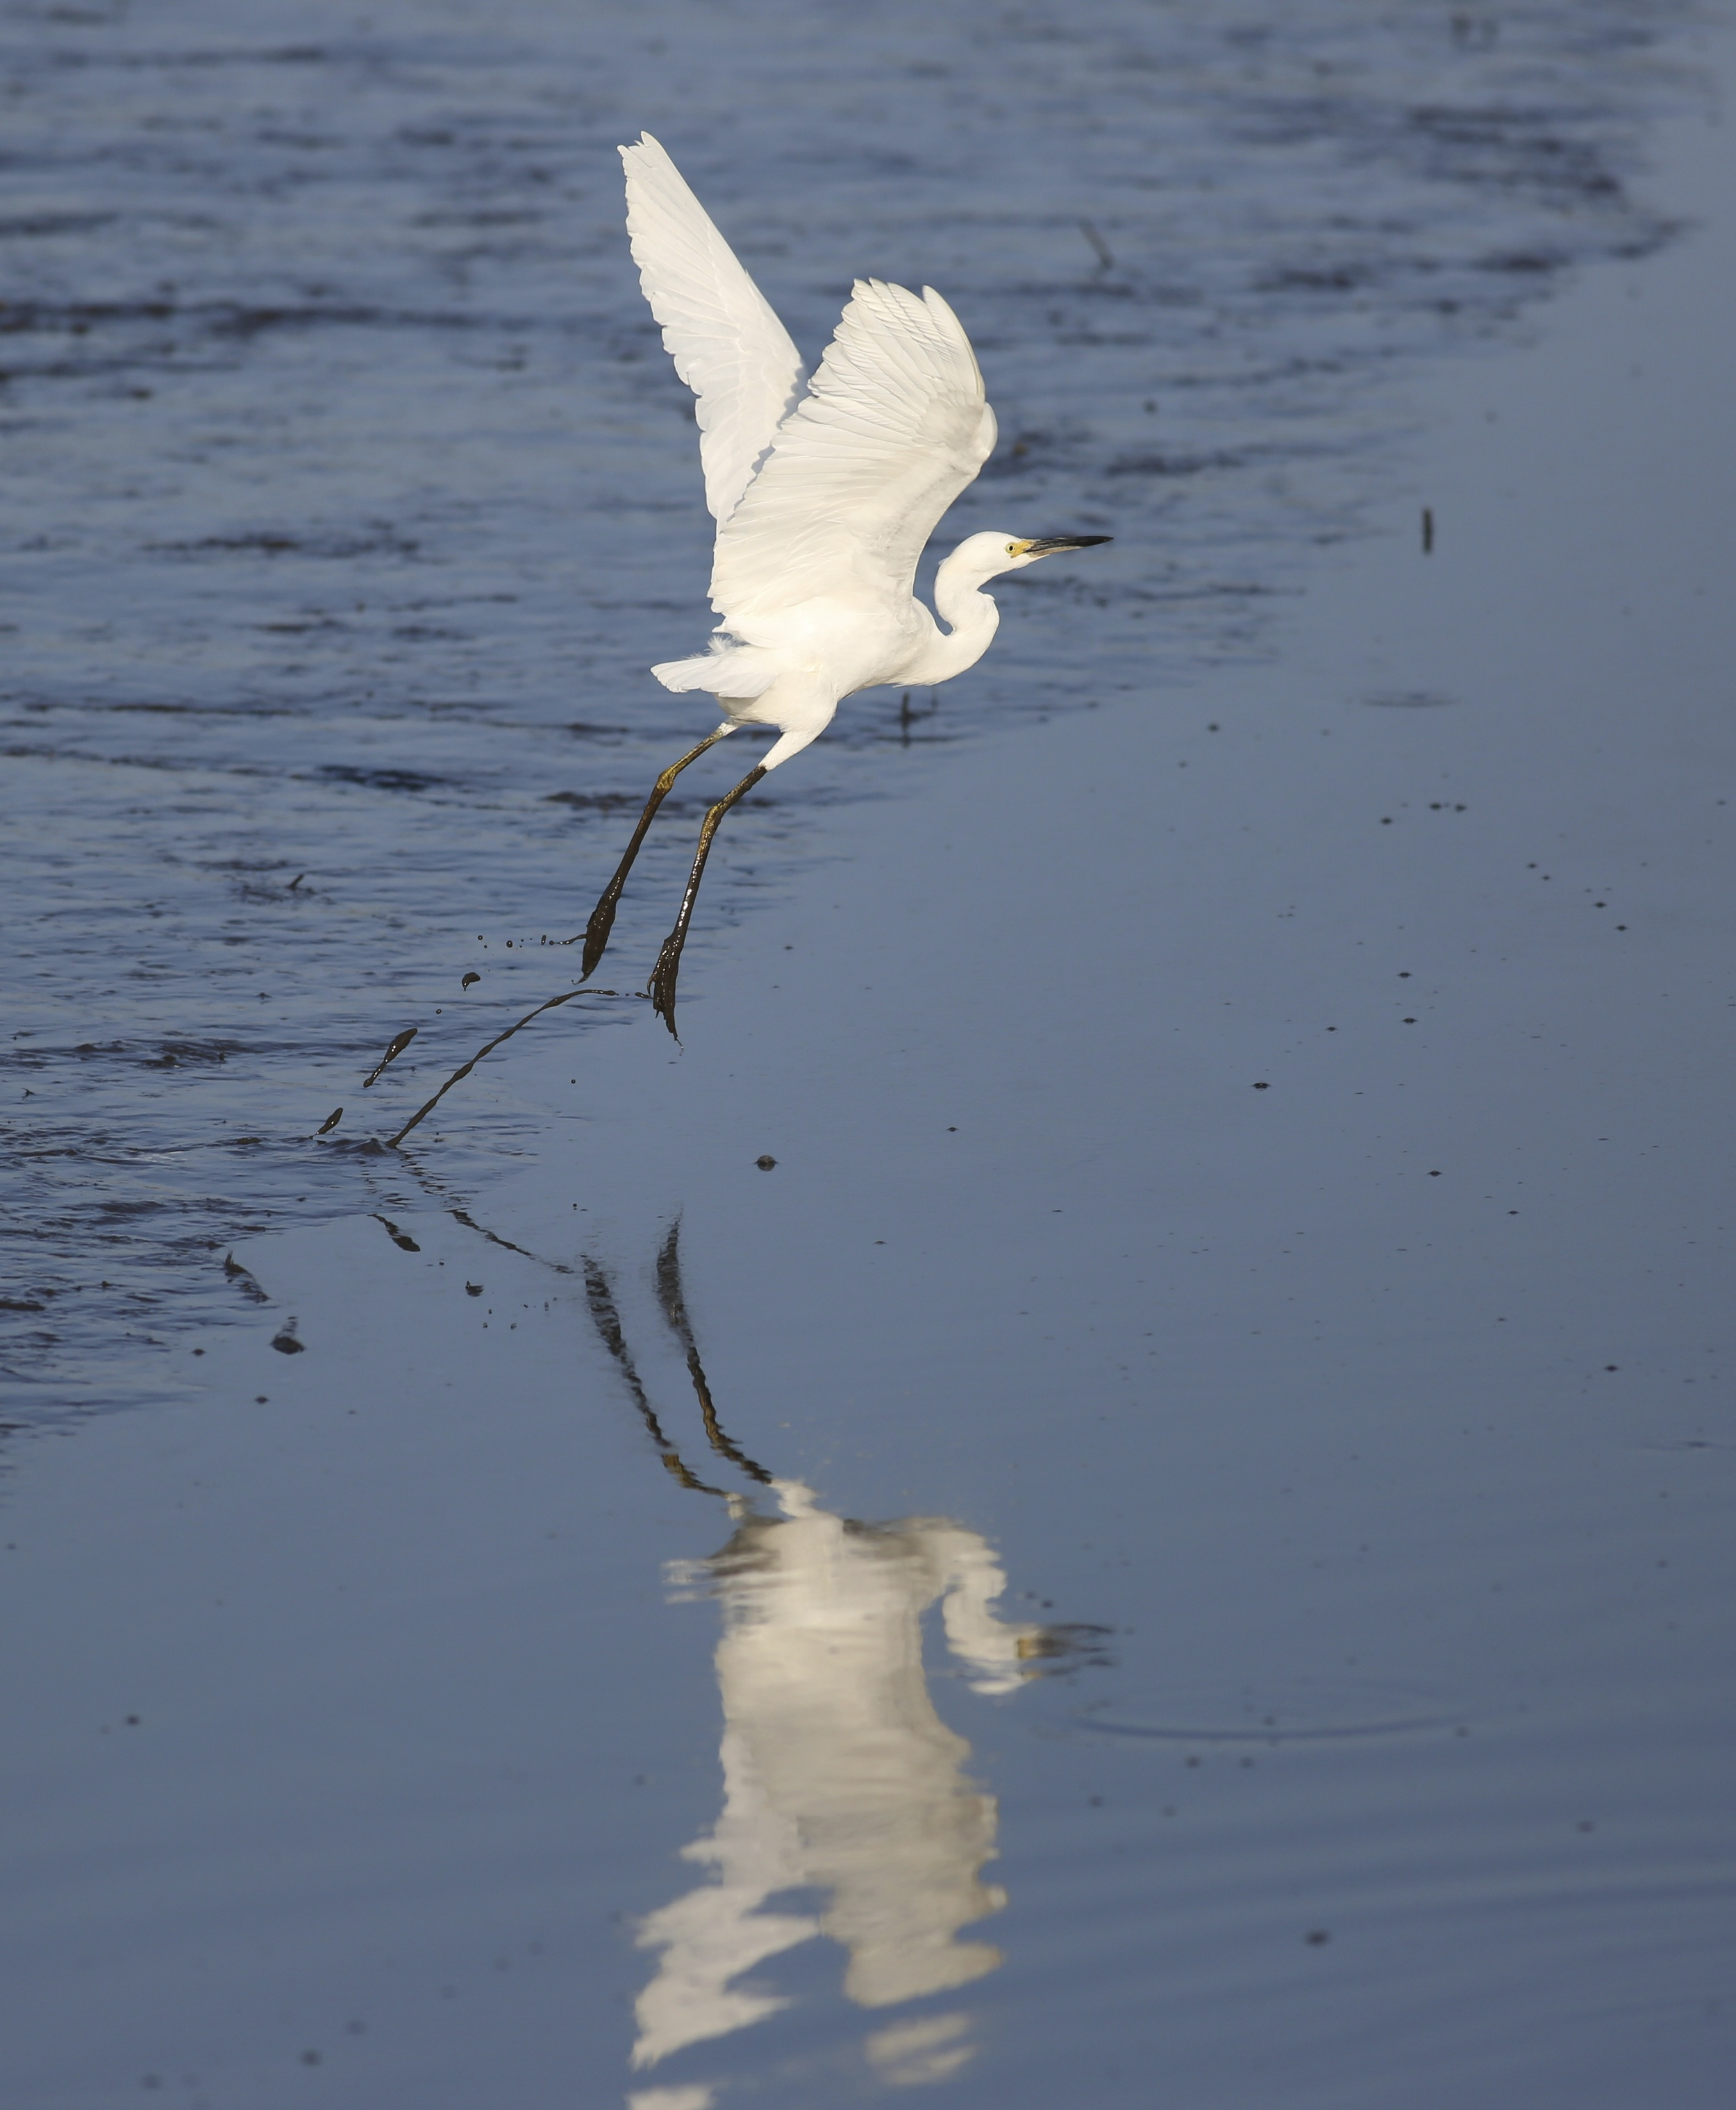 A Snowy Egret briefly touches down and takes off again...